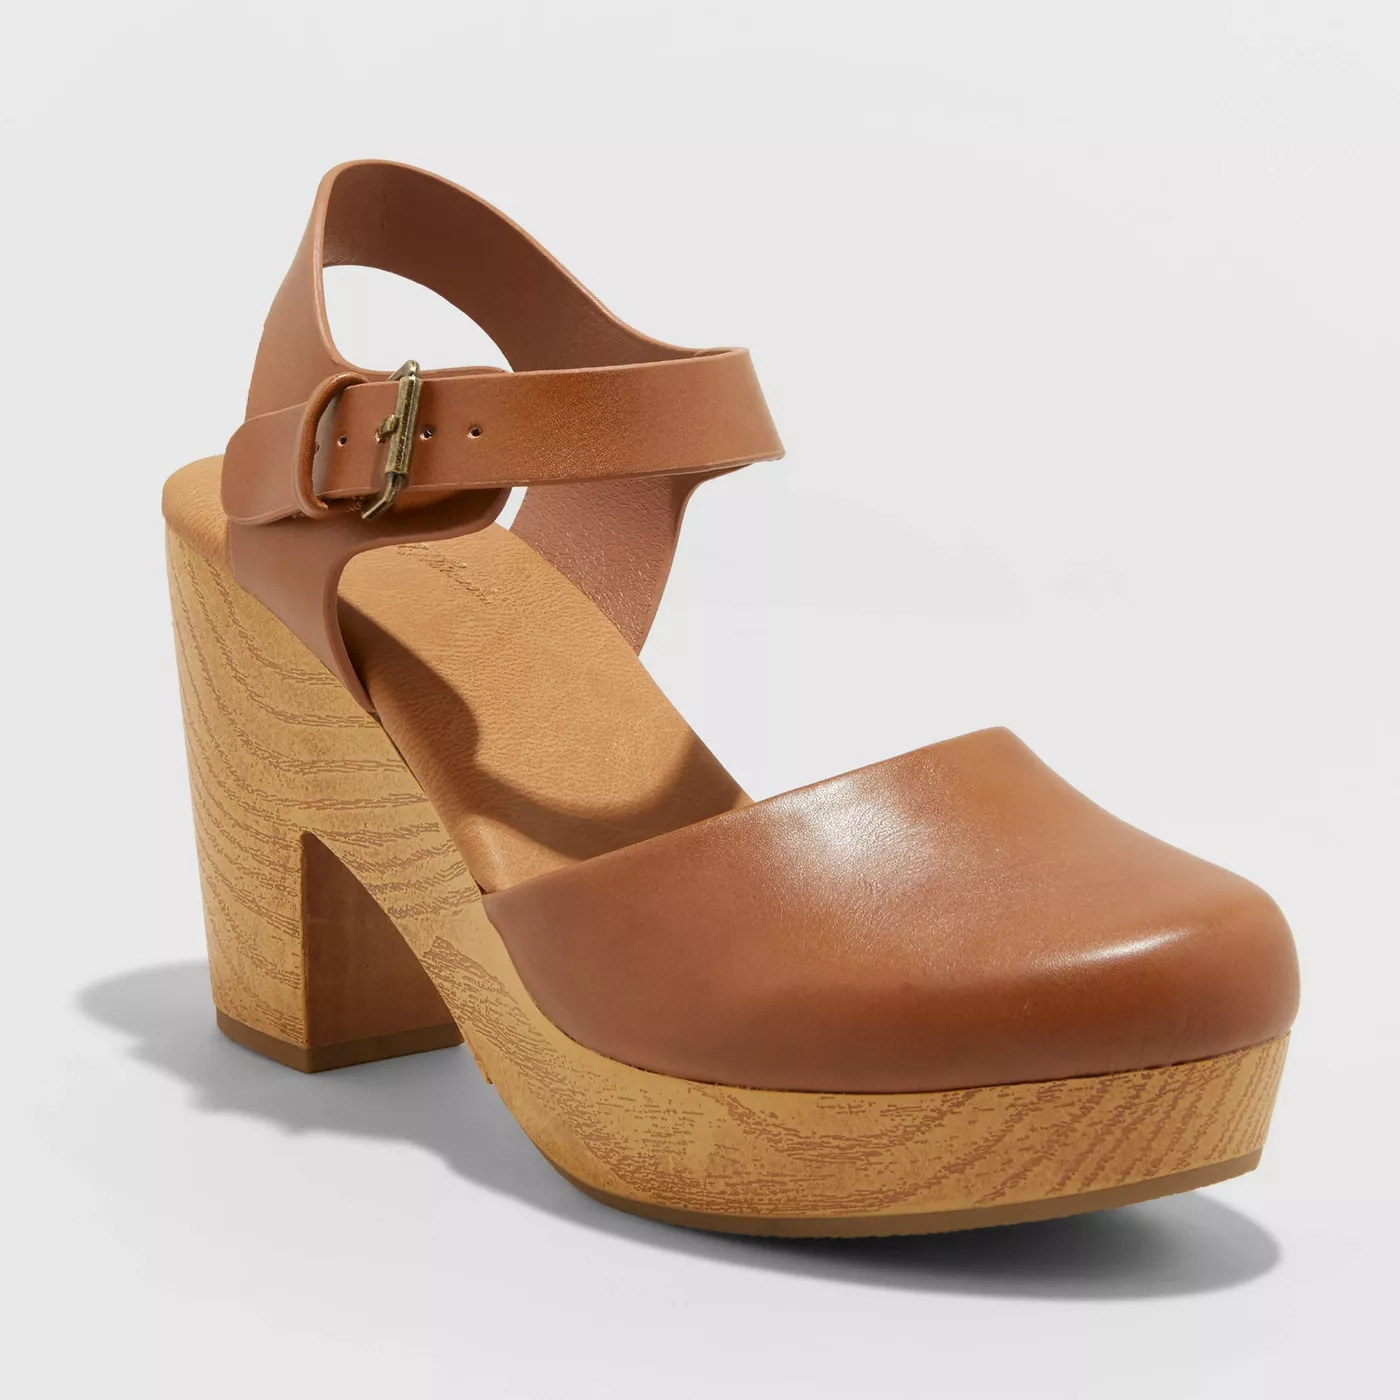 A tan clog wooden sandal with a rounded closed toe and leather straps around the heel.